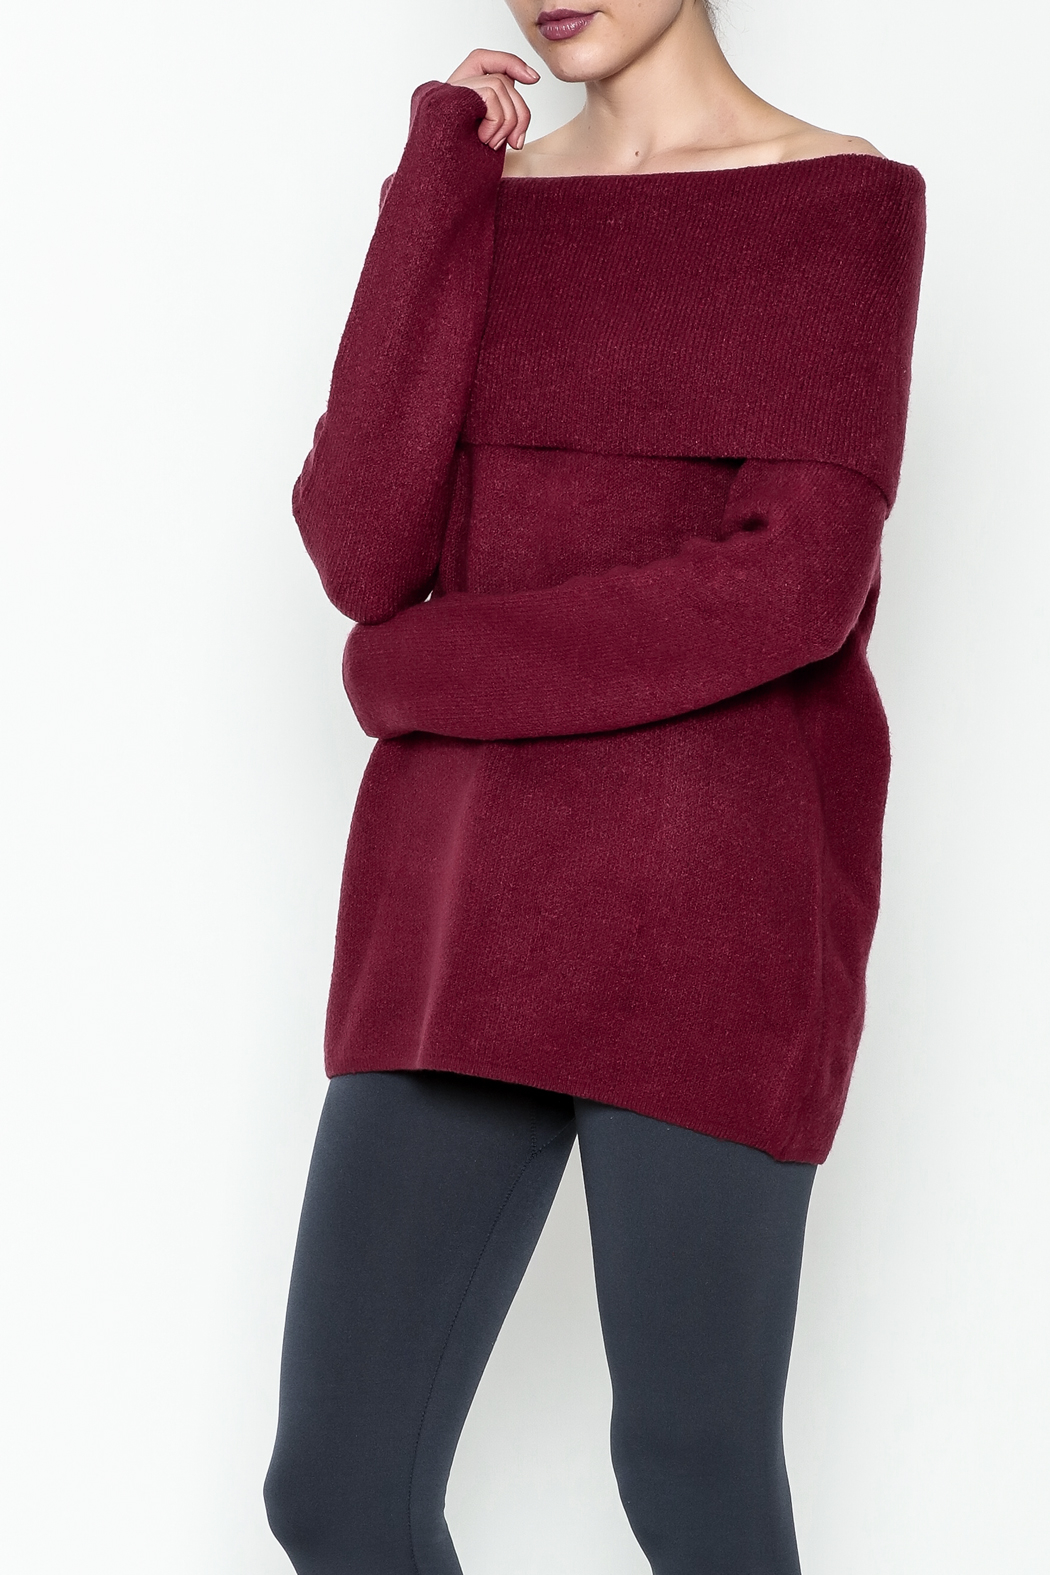 Elan Pullover Knit Sweater - Front Cropped Image